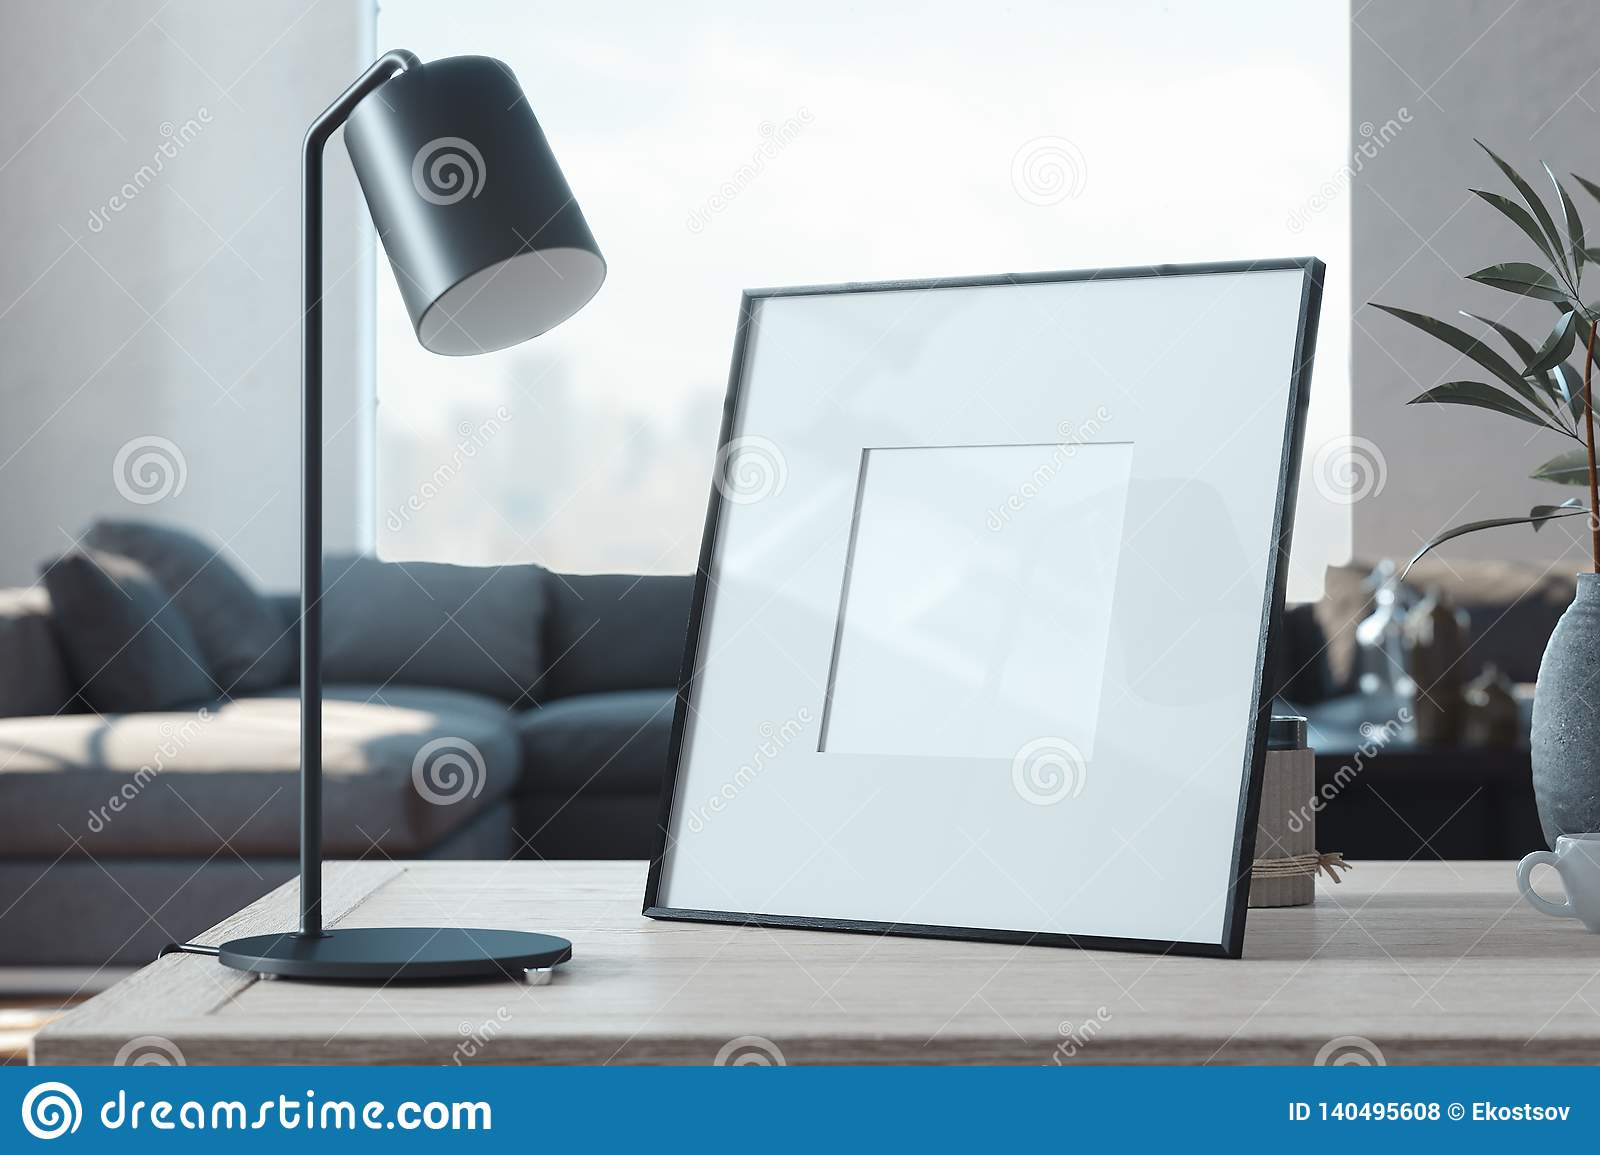 Blank photo frame on wooden table in stylish living room. 3d rendering.